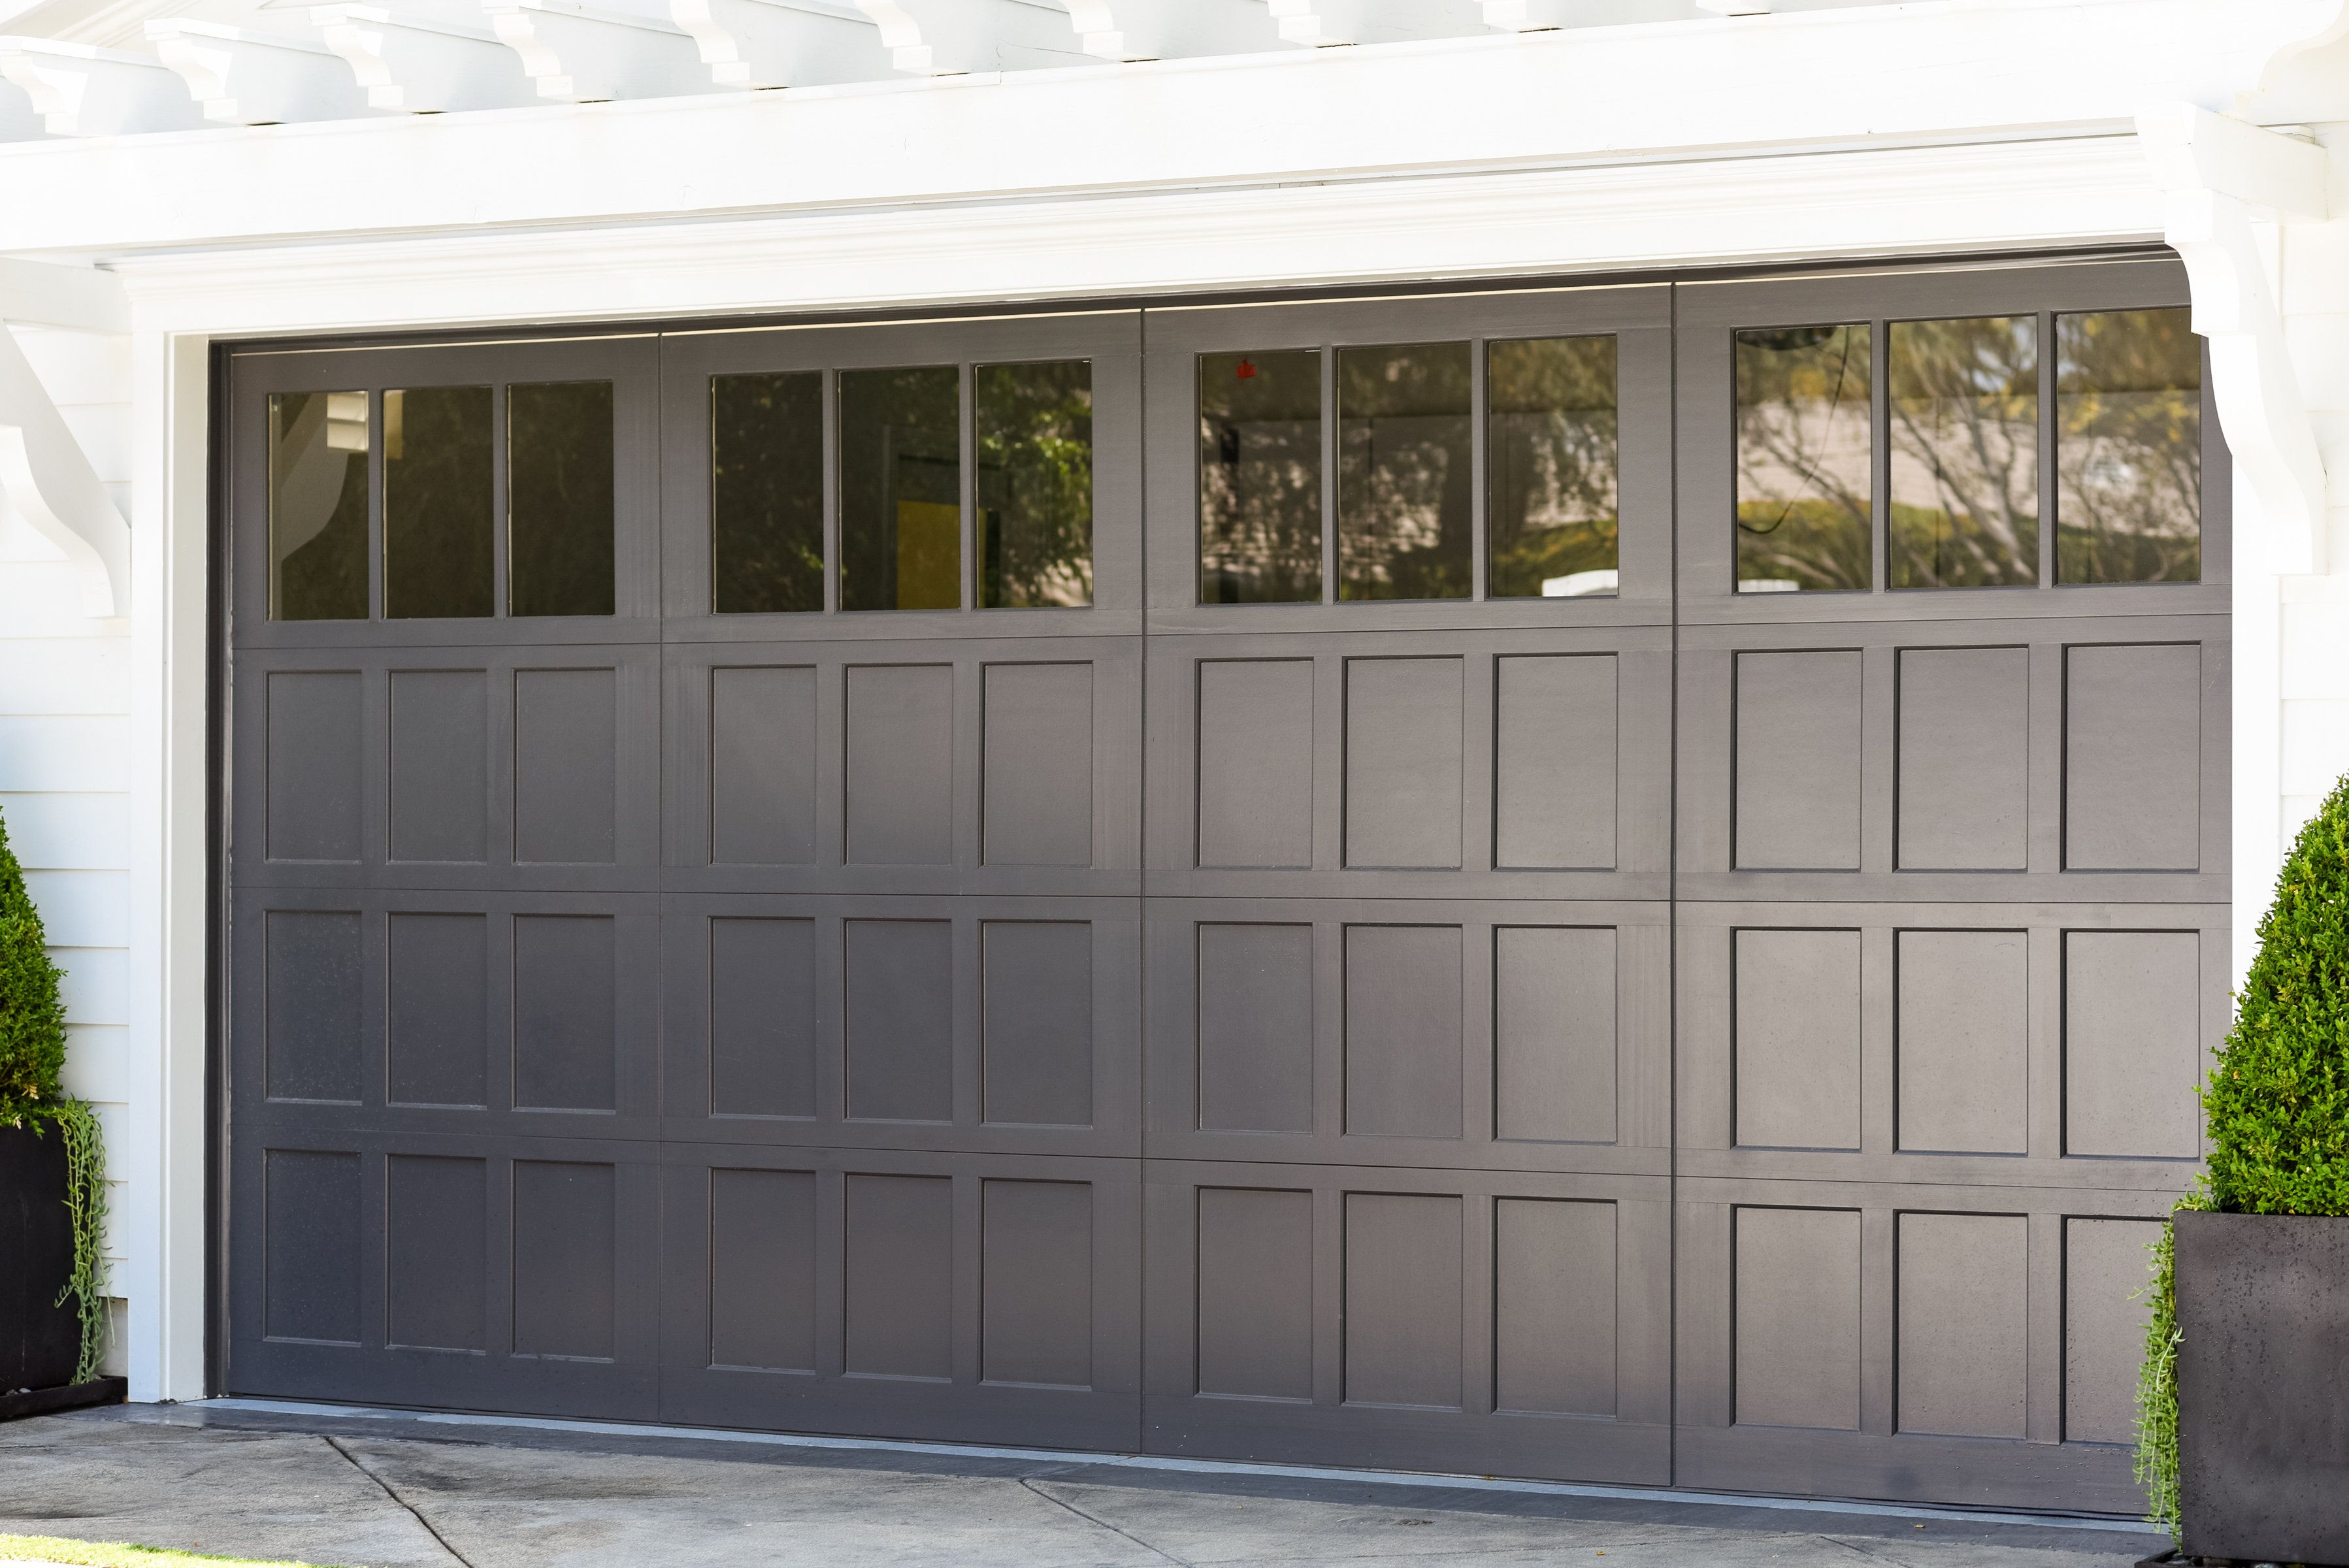 Beautiful Wayne Dalton 7104 Carriage Door With 12 Light Square Windows Los Garage Doors Garage Door Styles Garage Door Design